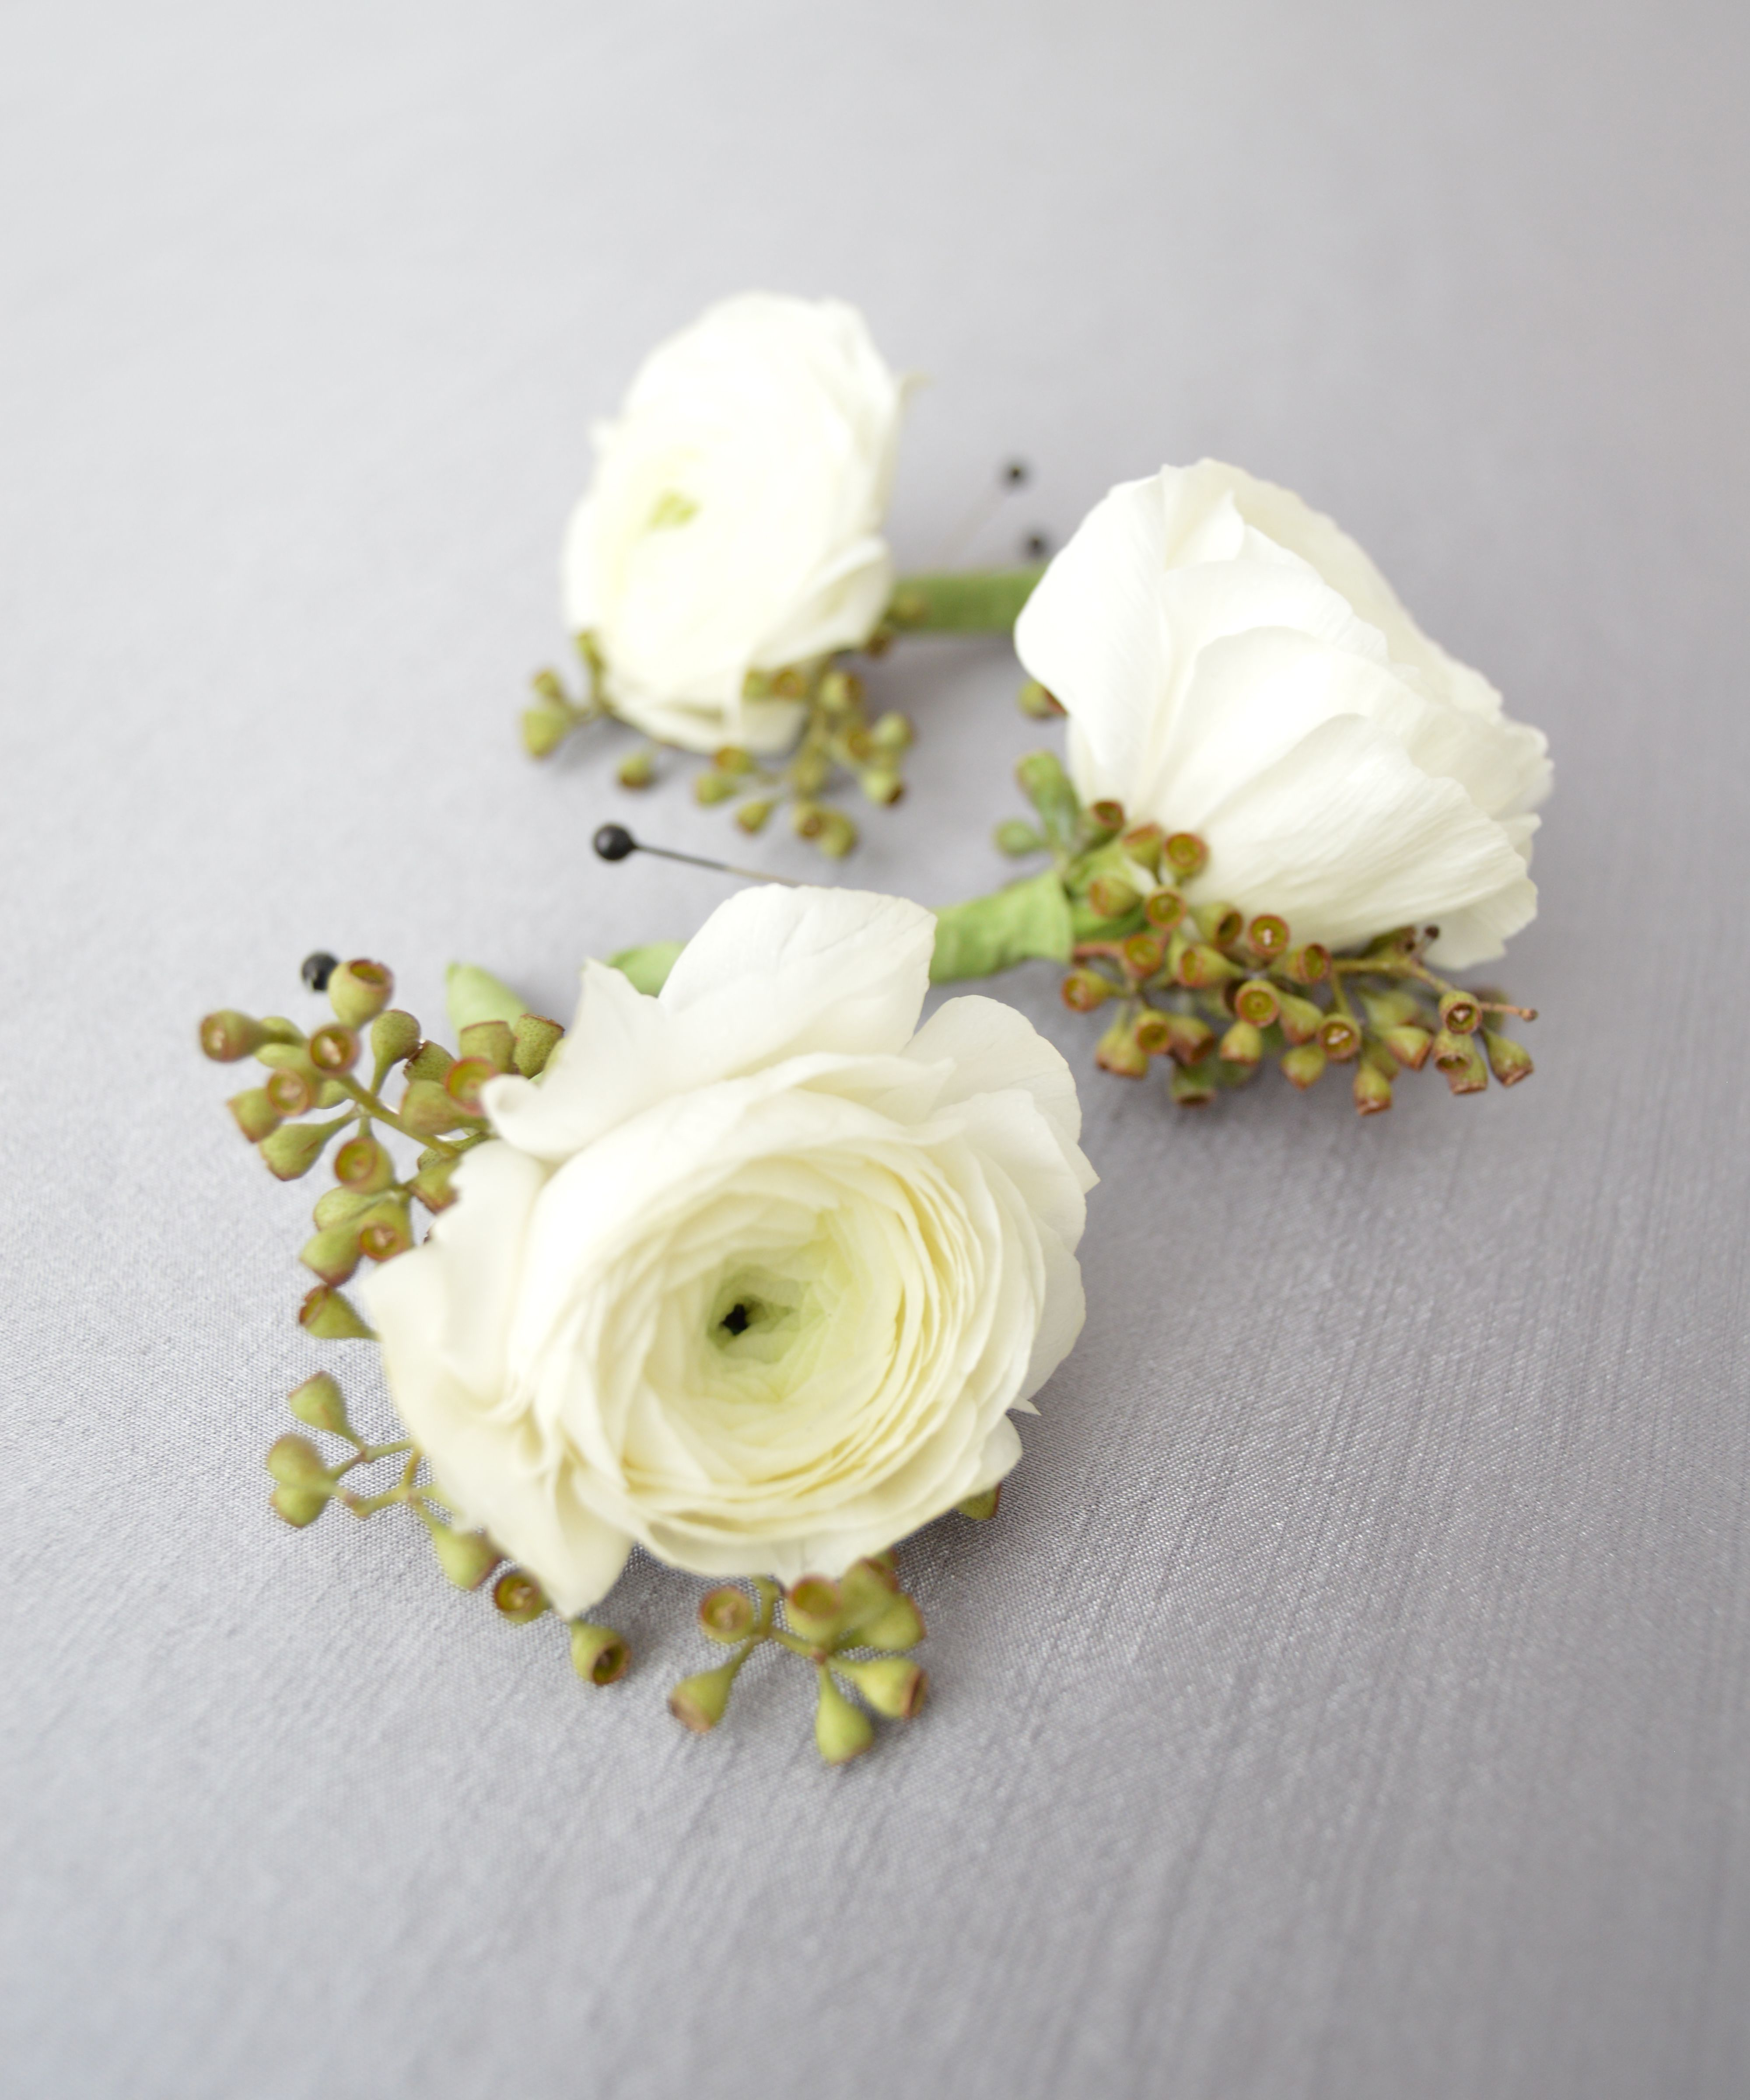 White Ranunculus Eucalyptus Pod Boutonniere Made By Holliday Flowers Events For A Spring Memphis Wedding White Ranunculus Memphis Weddings Boutonniere